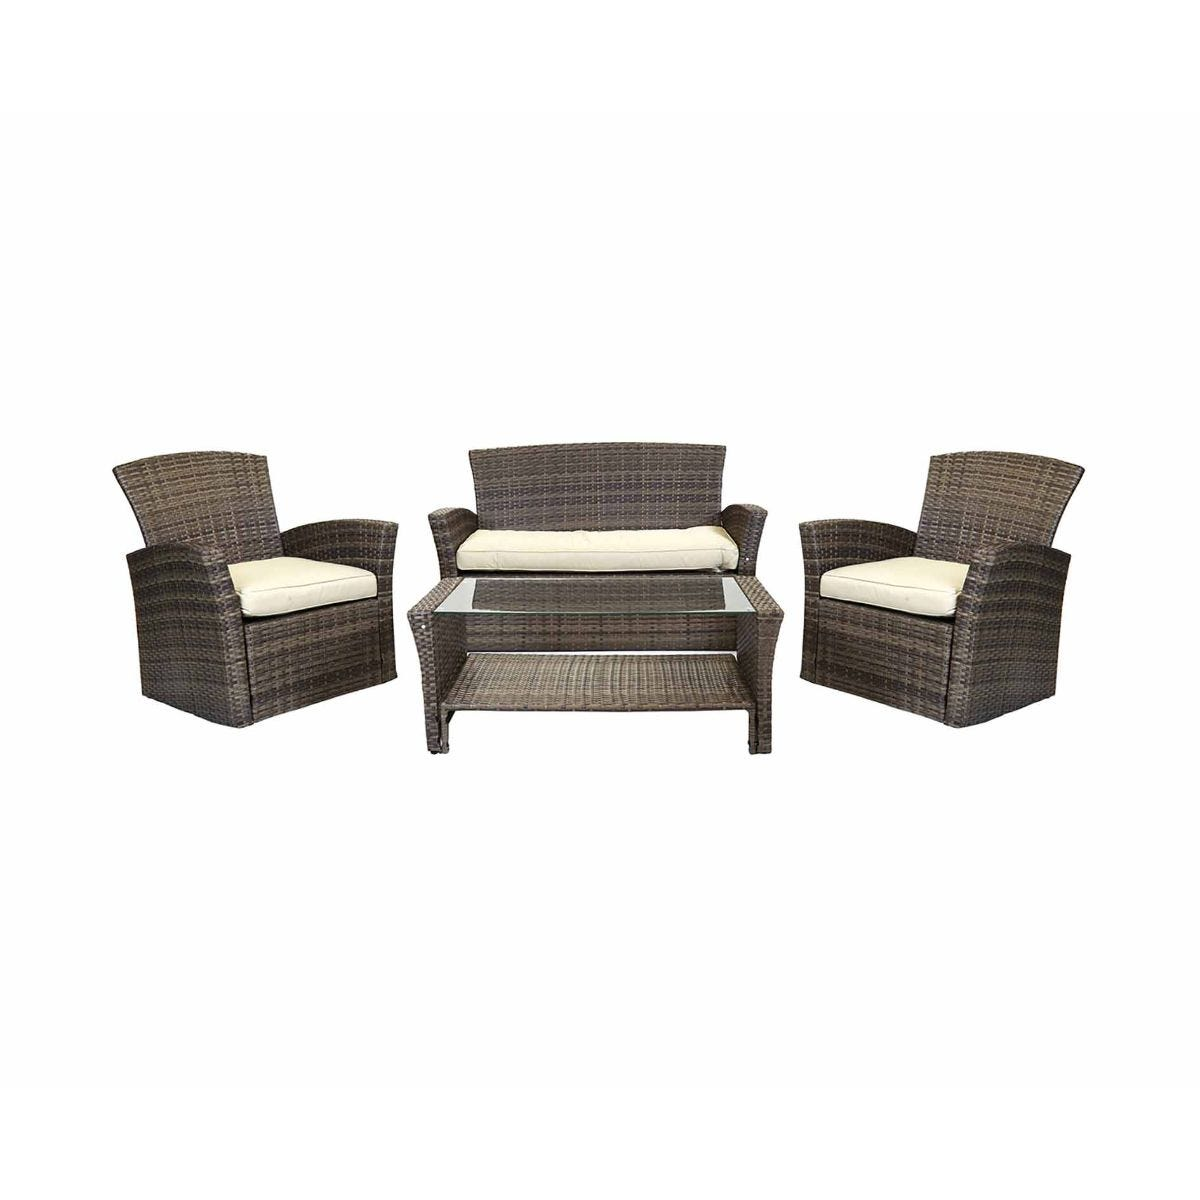 Charles Bentley Verona Deluxe Garden Rattan 4 Piece Table and Chairs Set, Brown